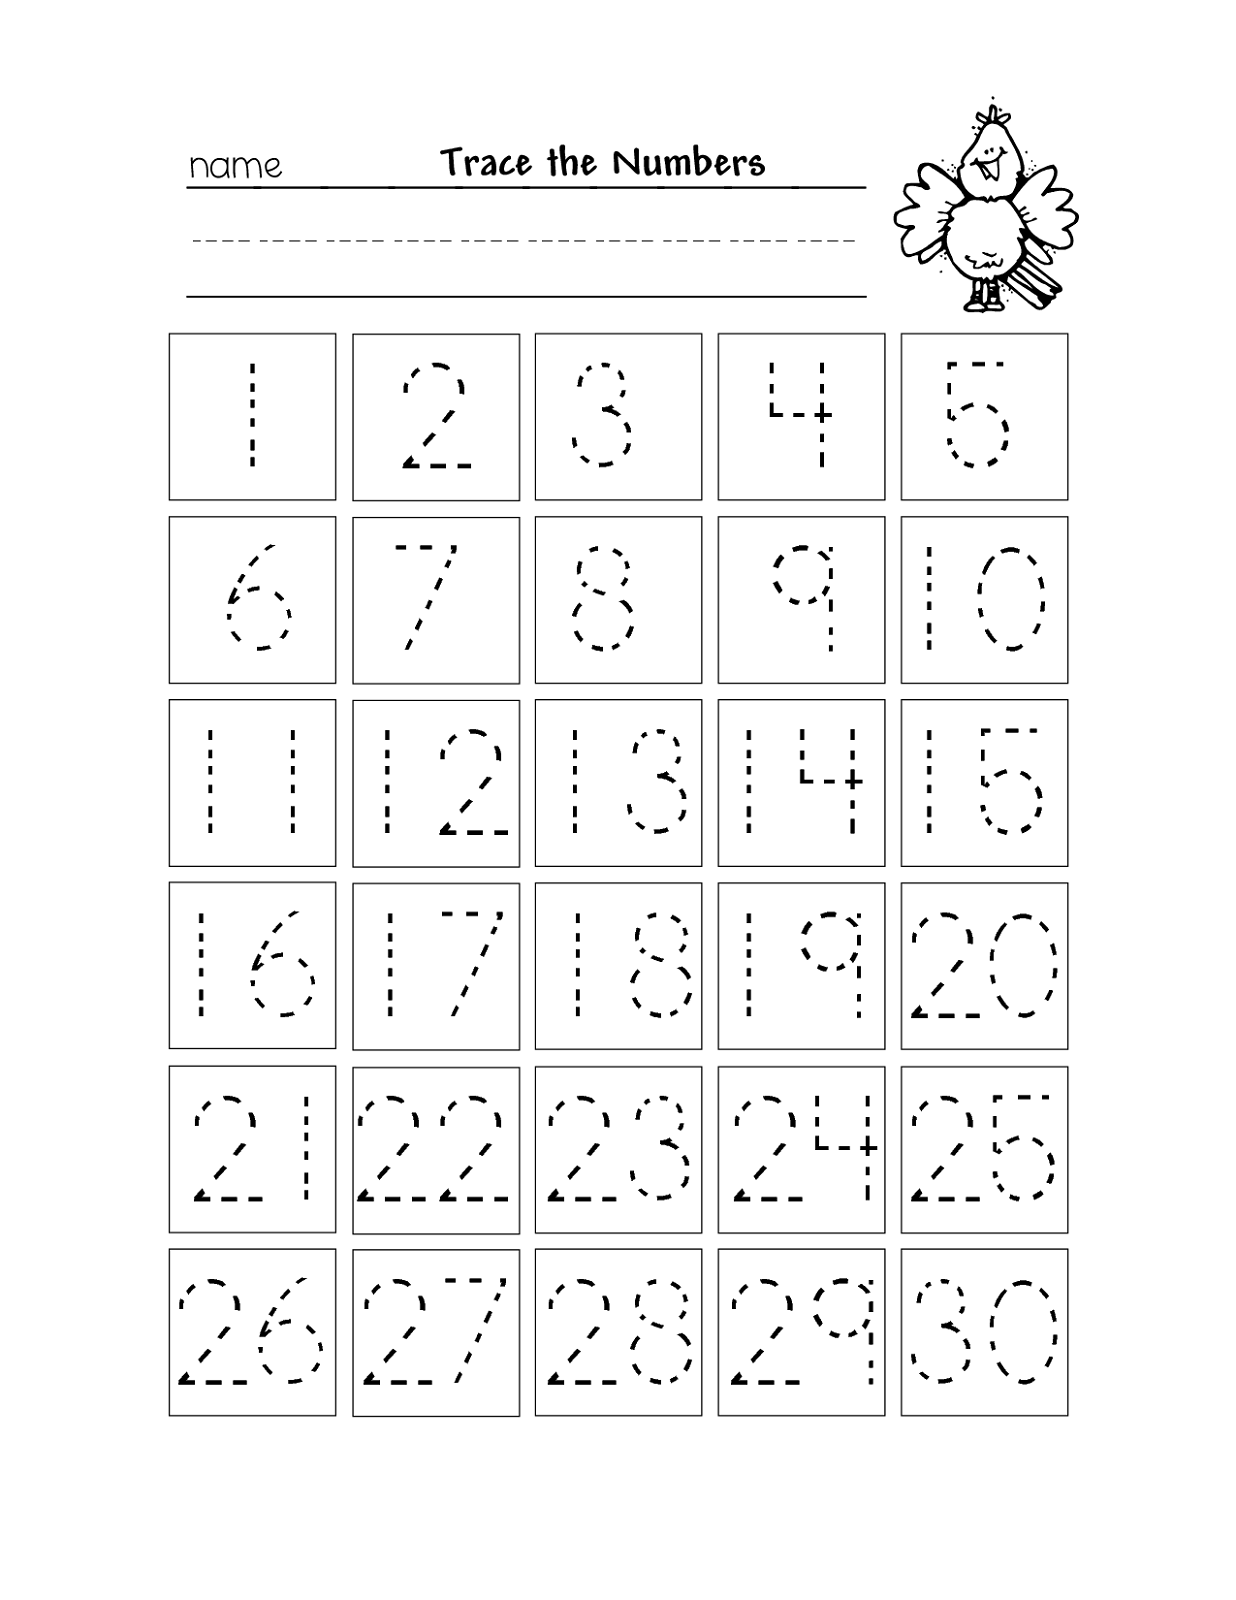 Trace The Numbers 1 30 Kiddo Shelter Kids Worksheets